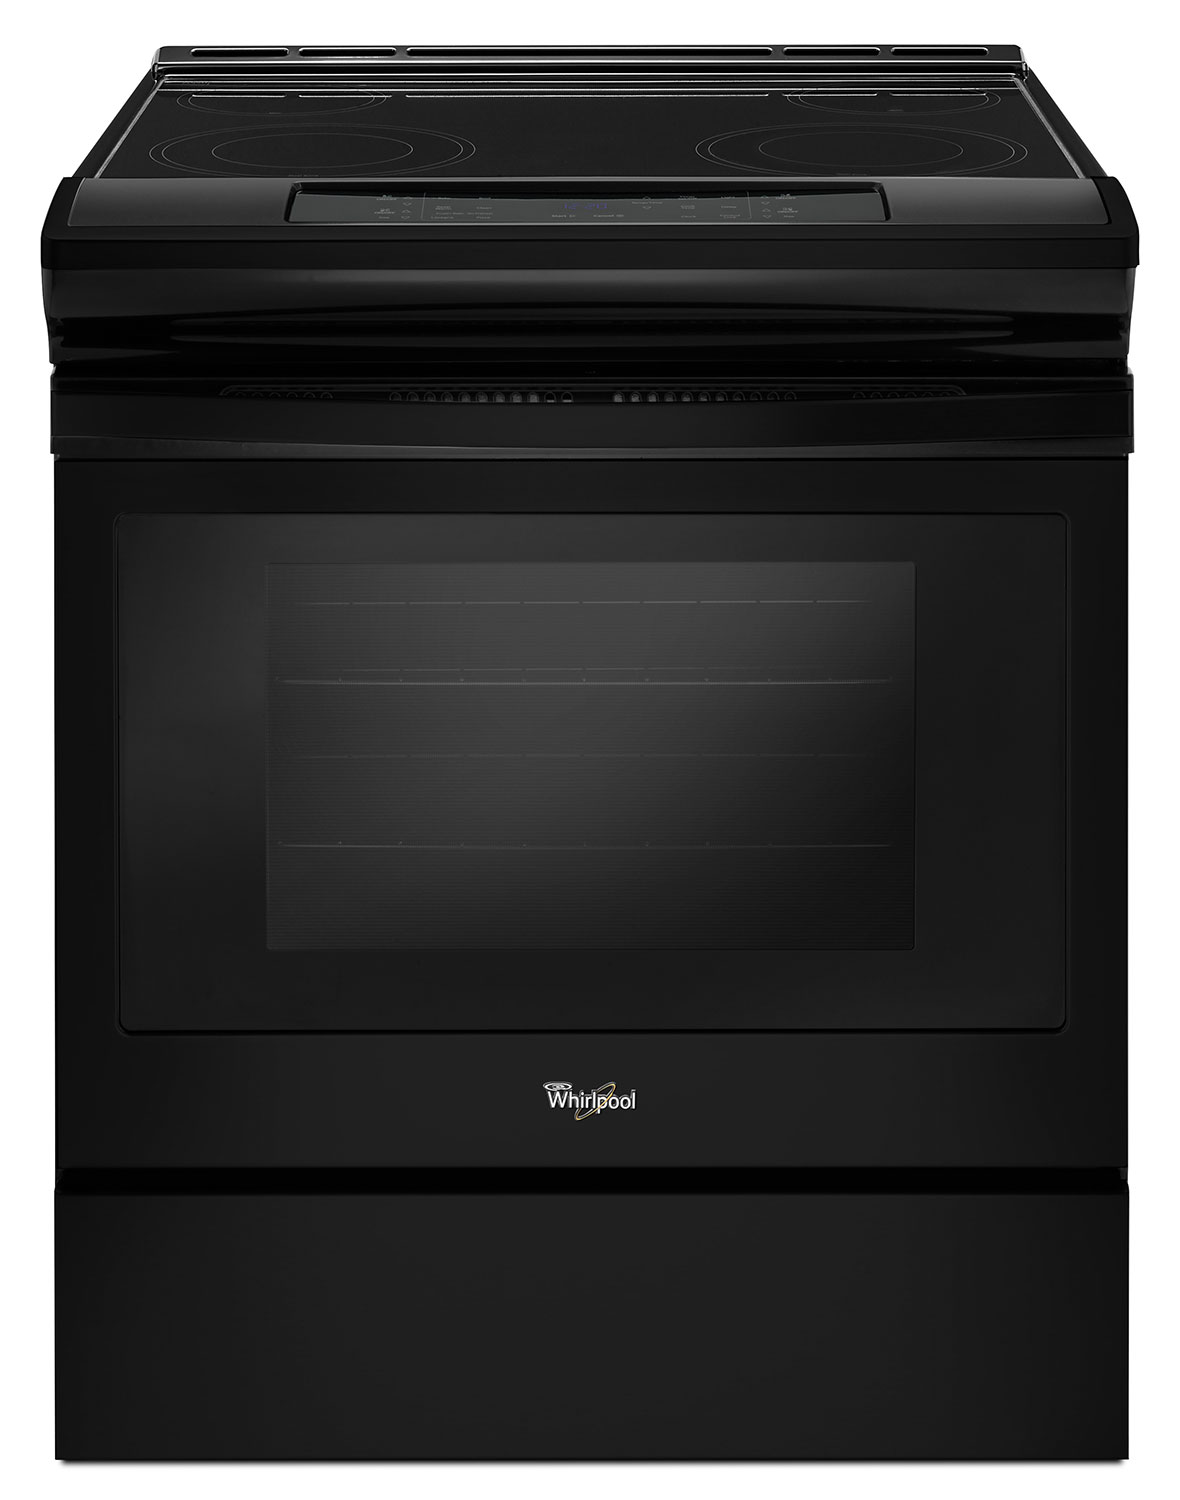 Whirlpool Black Slide-In Electric Range (4.8 Cu. Ft.) - YWEE510S0FB